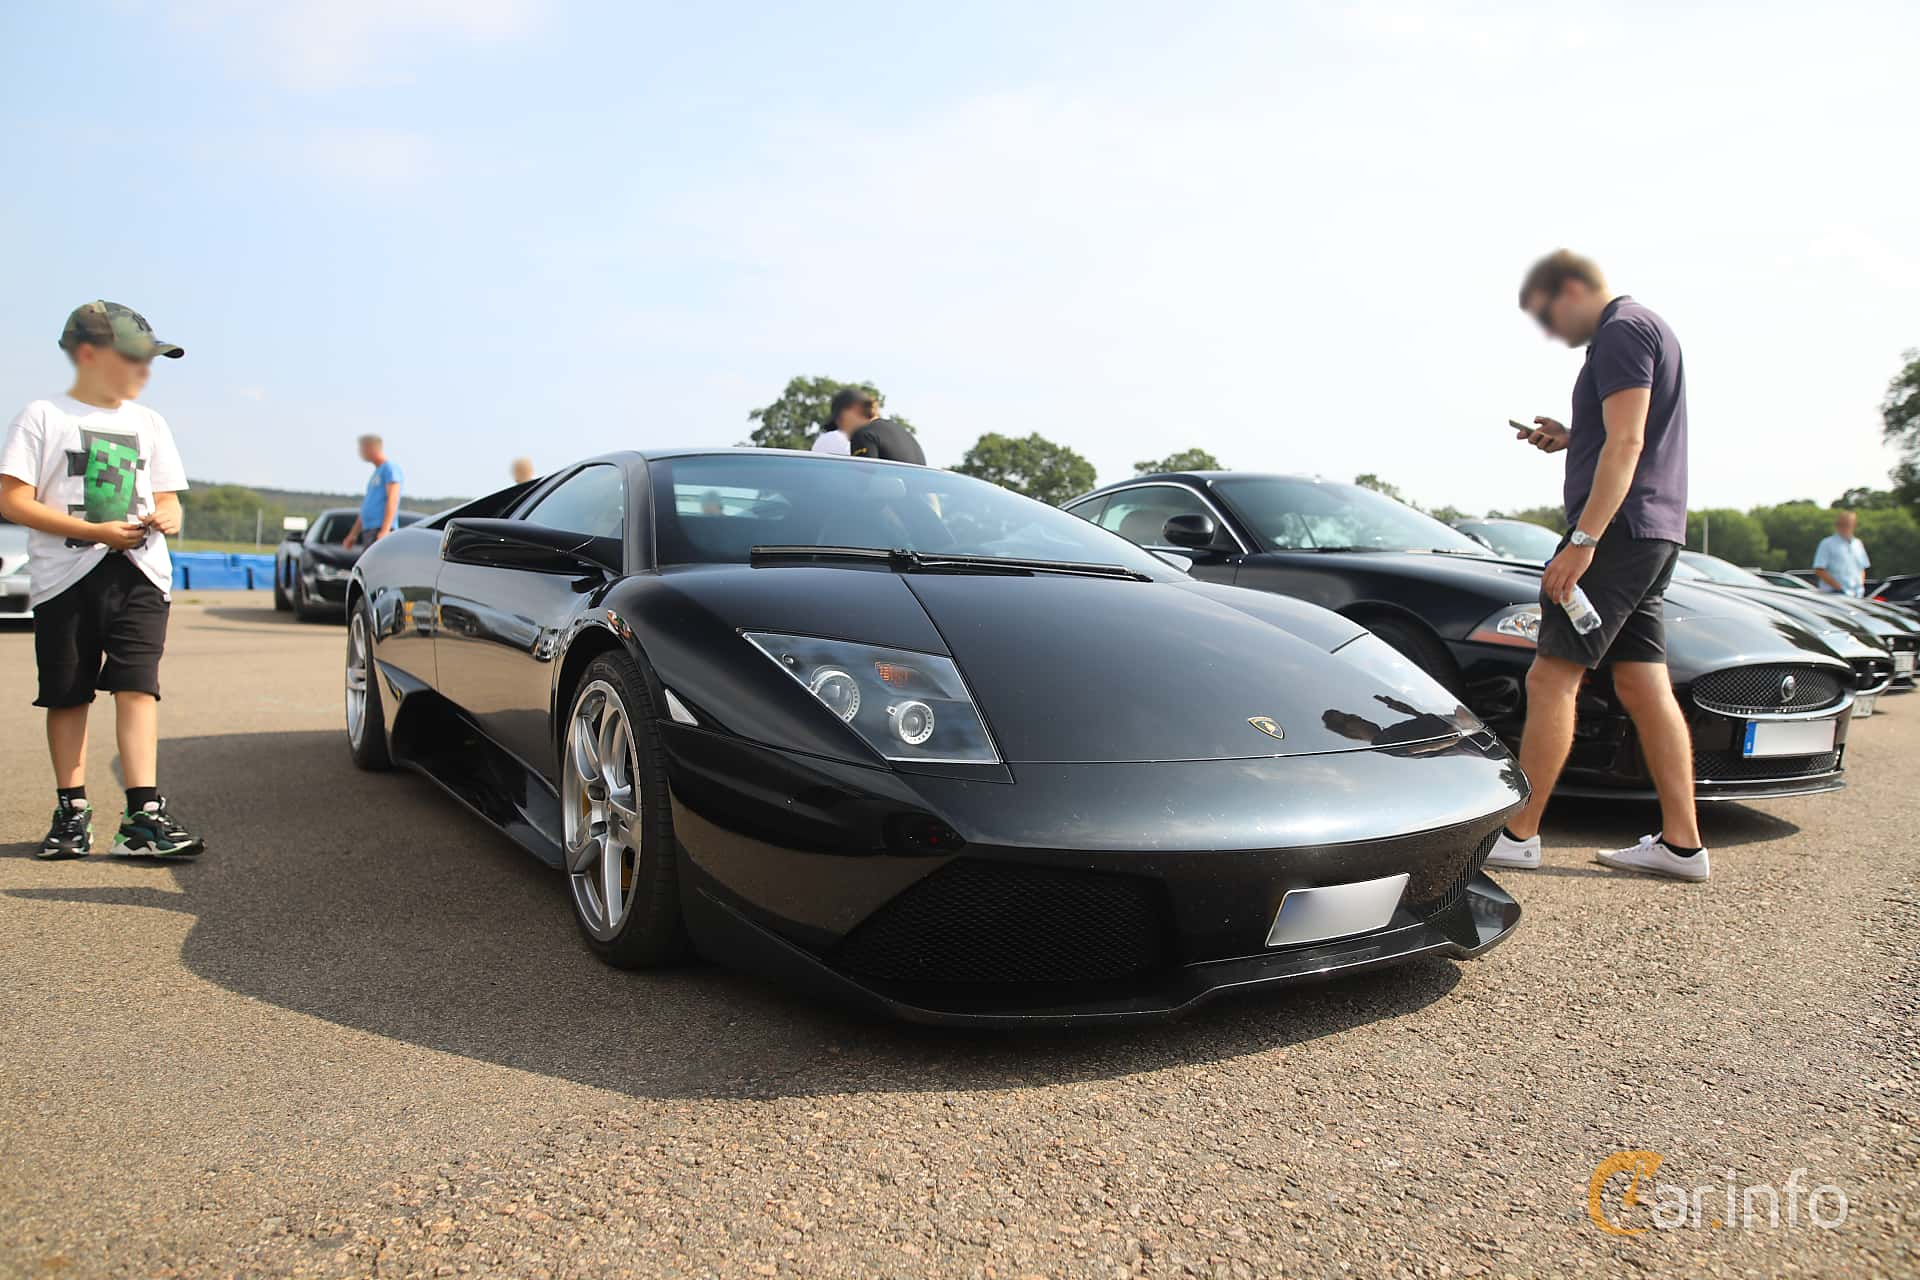 Front/Side  of Lamborghini Murciélago LP 640 6.5 V12 Manual, 640ps, 2007 at Autoropa Racing day Knutstorp 2019